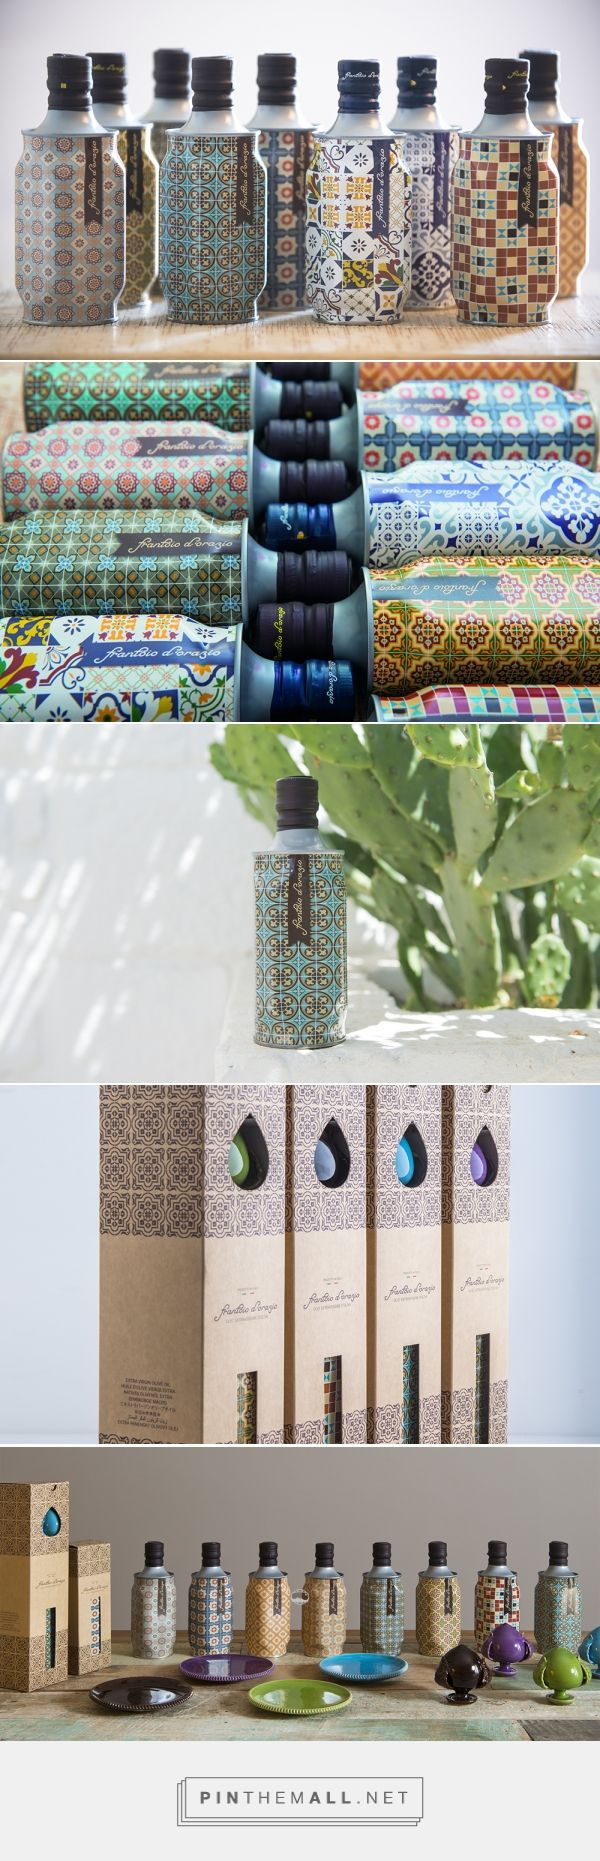 Nice patterns! Mediterranean Collection Olive Oil packaging design by Cream studio - http://www.packagingoftheworld.com/2016/11/mediterranean-collection-olive-oil.html